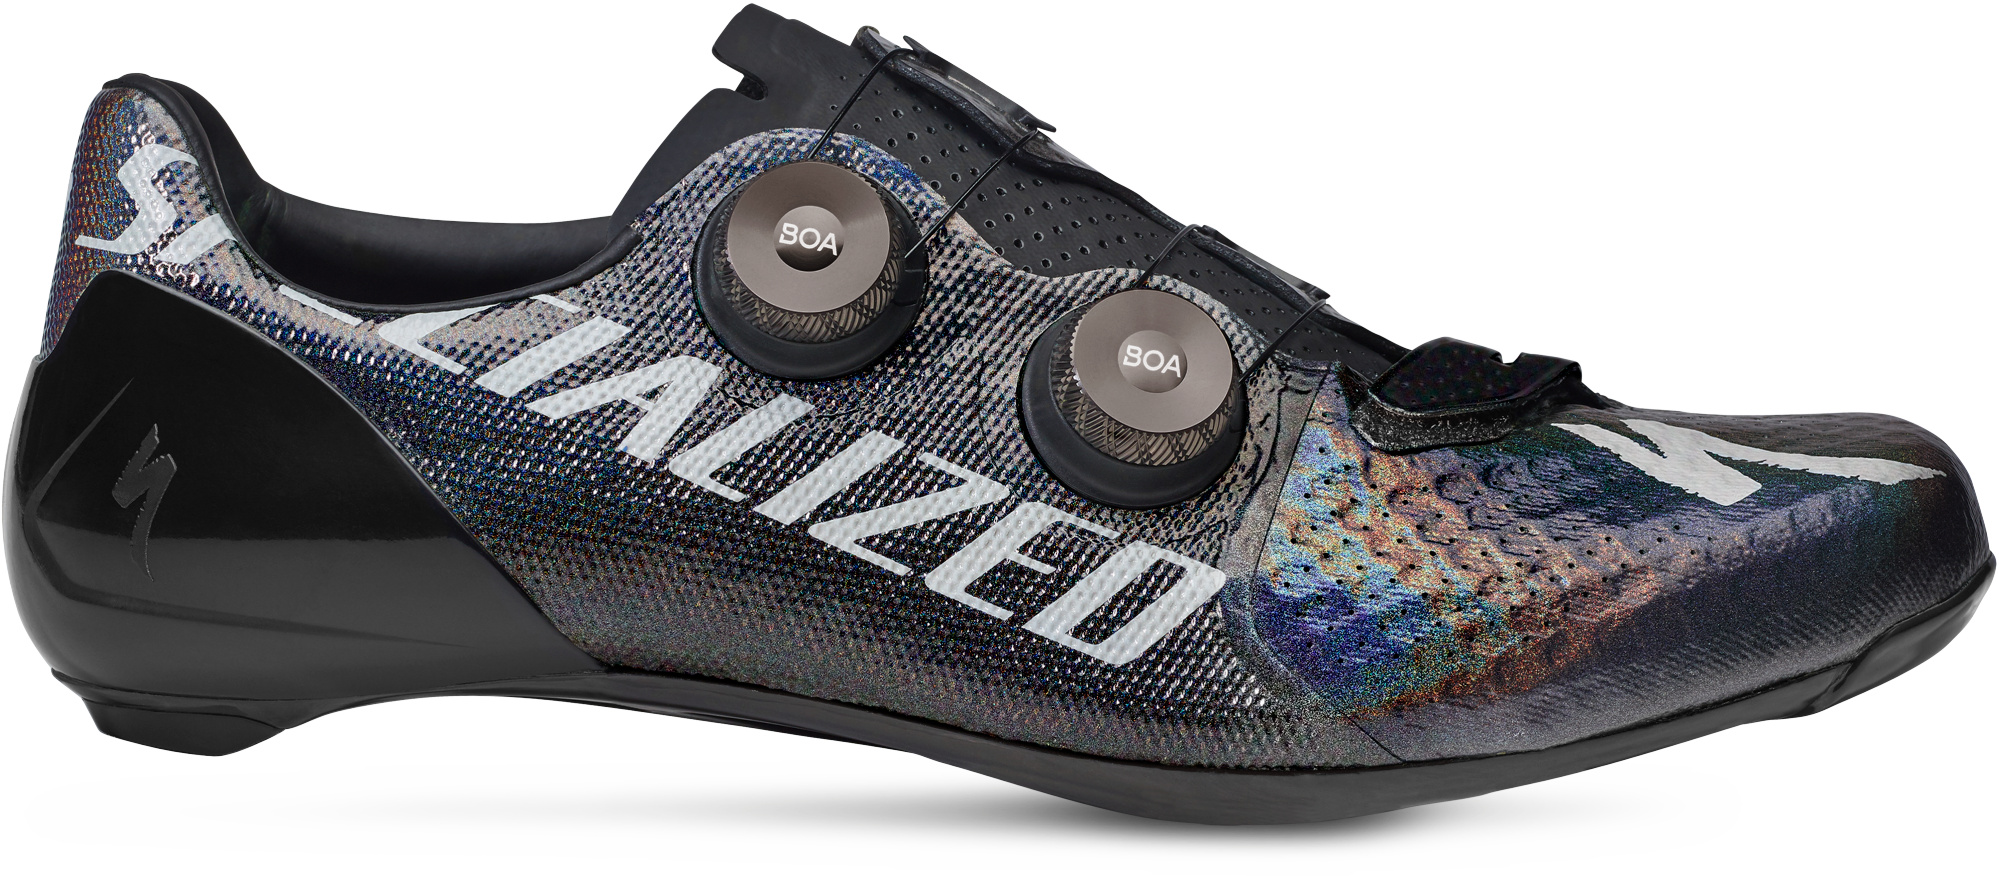 S-WORKS 7 RD SHOE SAGAN COLL UNDRX